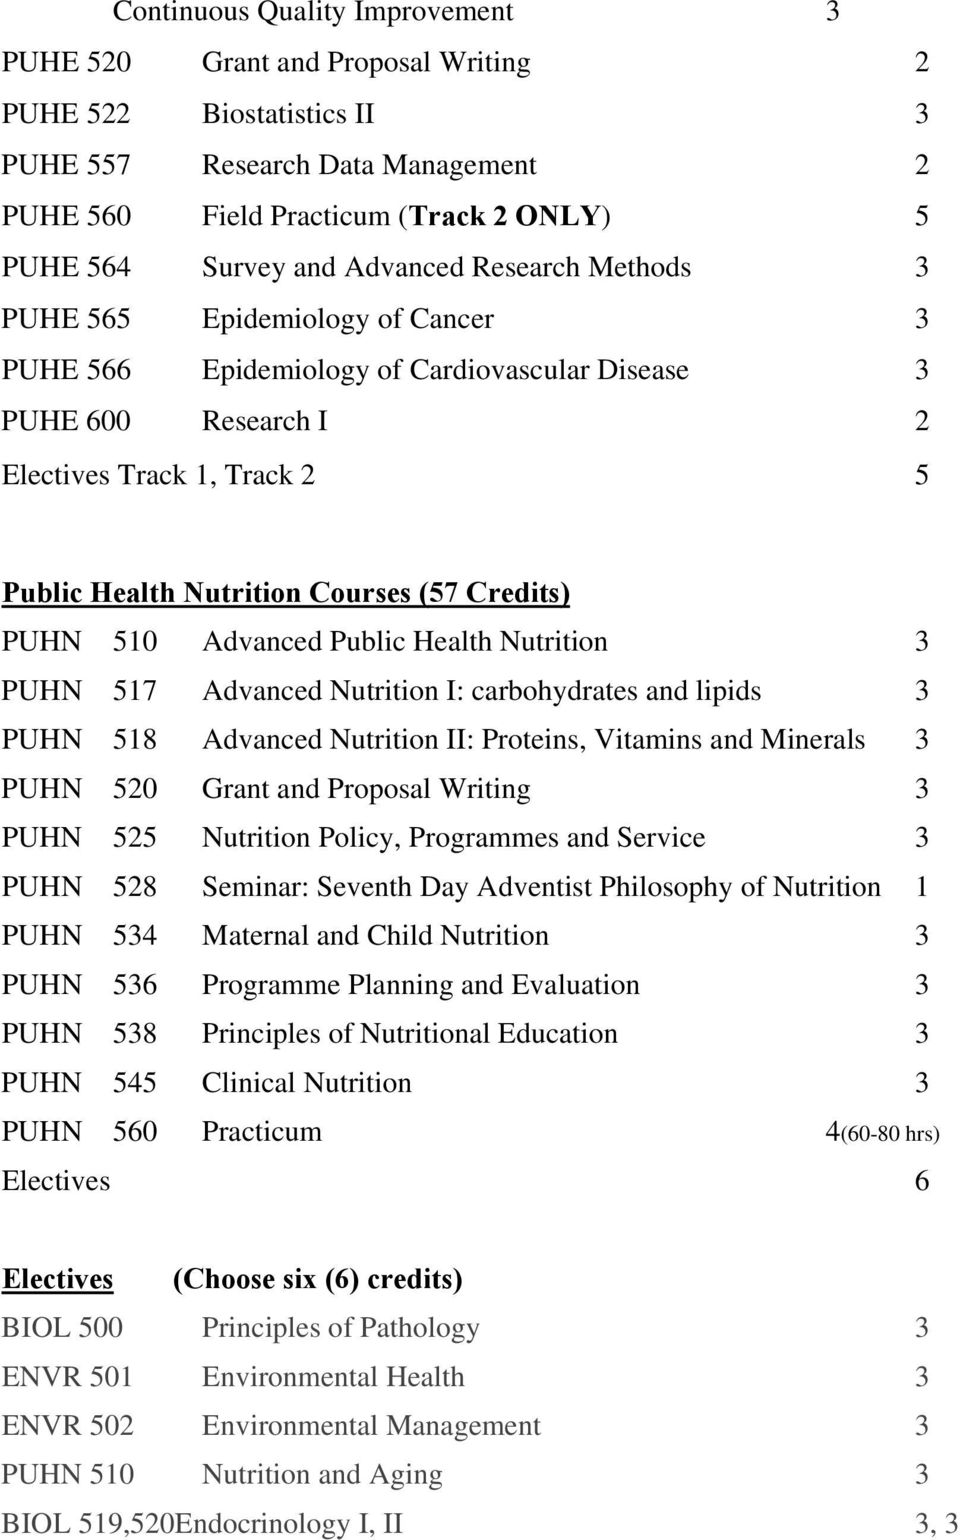 Credits) PUHN 510 Advanced Public Health Nutrition 3 PUHN 517 Advanced Nutrition I: carbohydrates and lipids 3 PUHN 518 Advanced Nutrition II: Proteins, Vitamins and Minerals 3 PUHN 520 Grant and